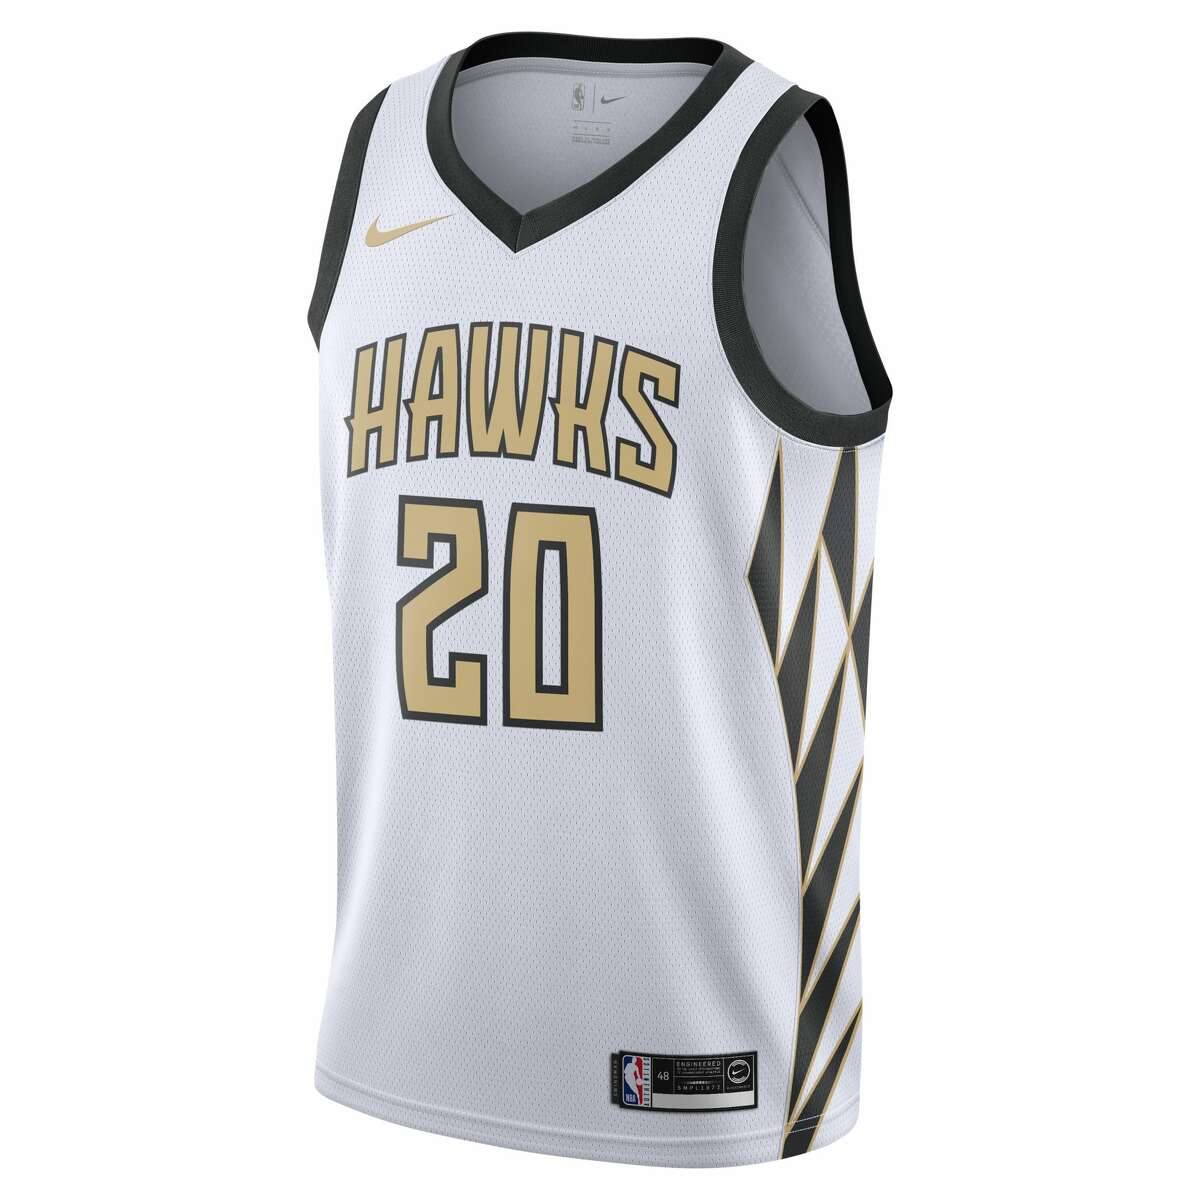 The Atlanta Hawks' NBA City Edition jersey for the 2018-19 season.